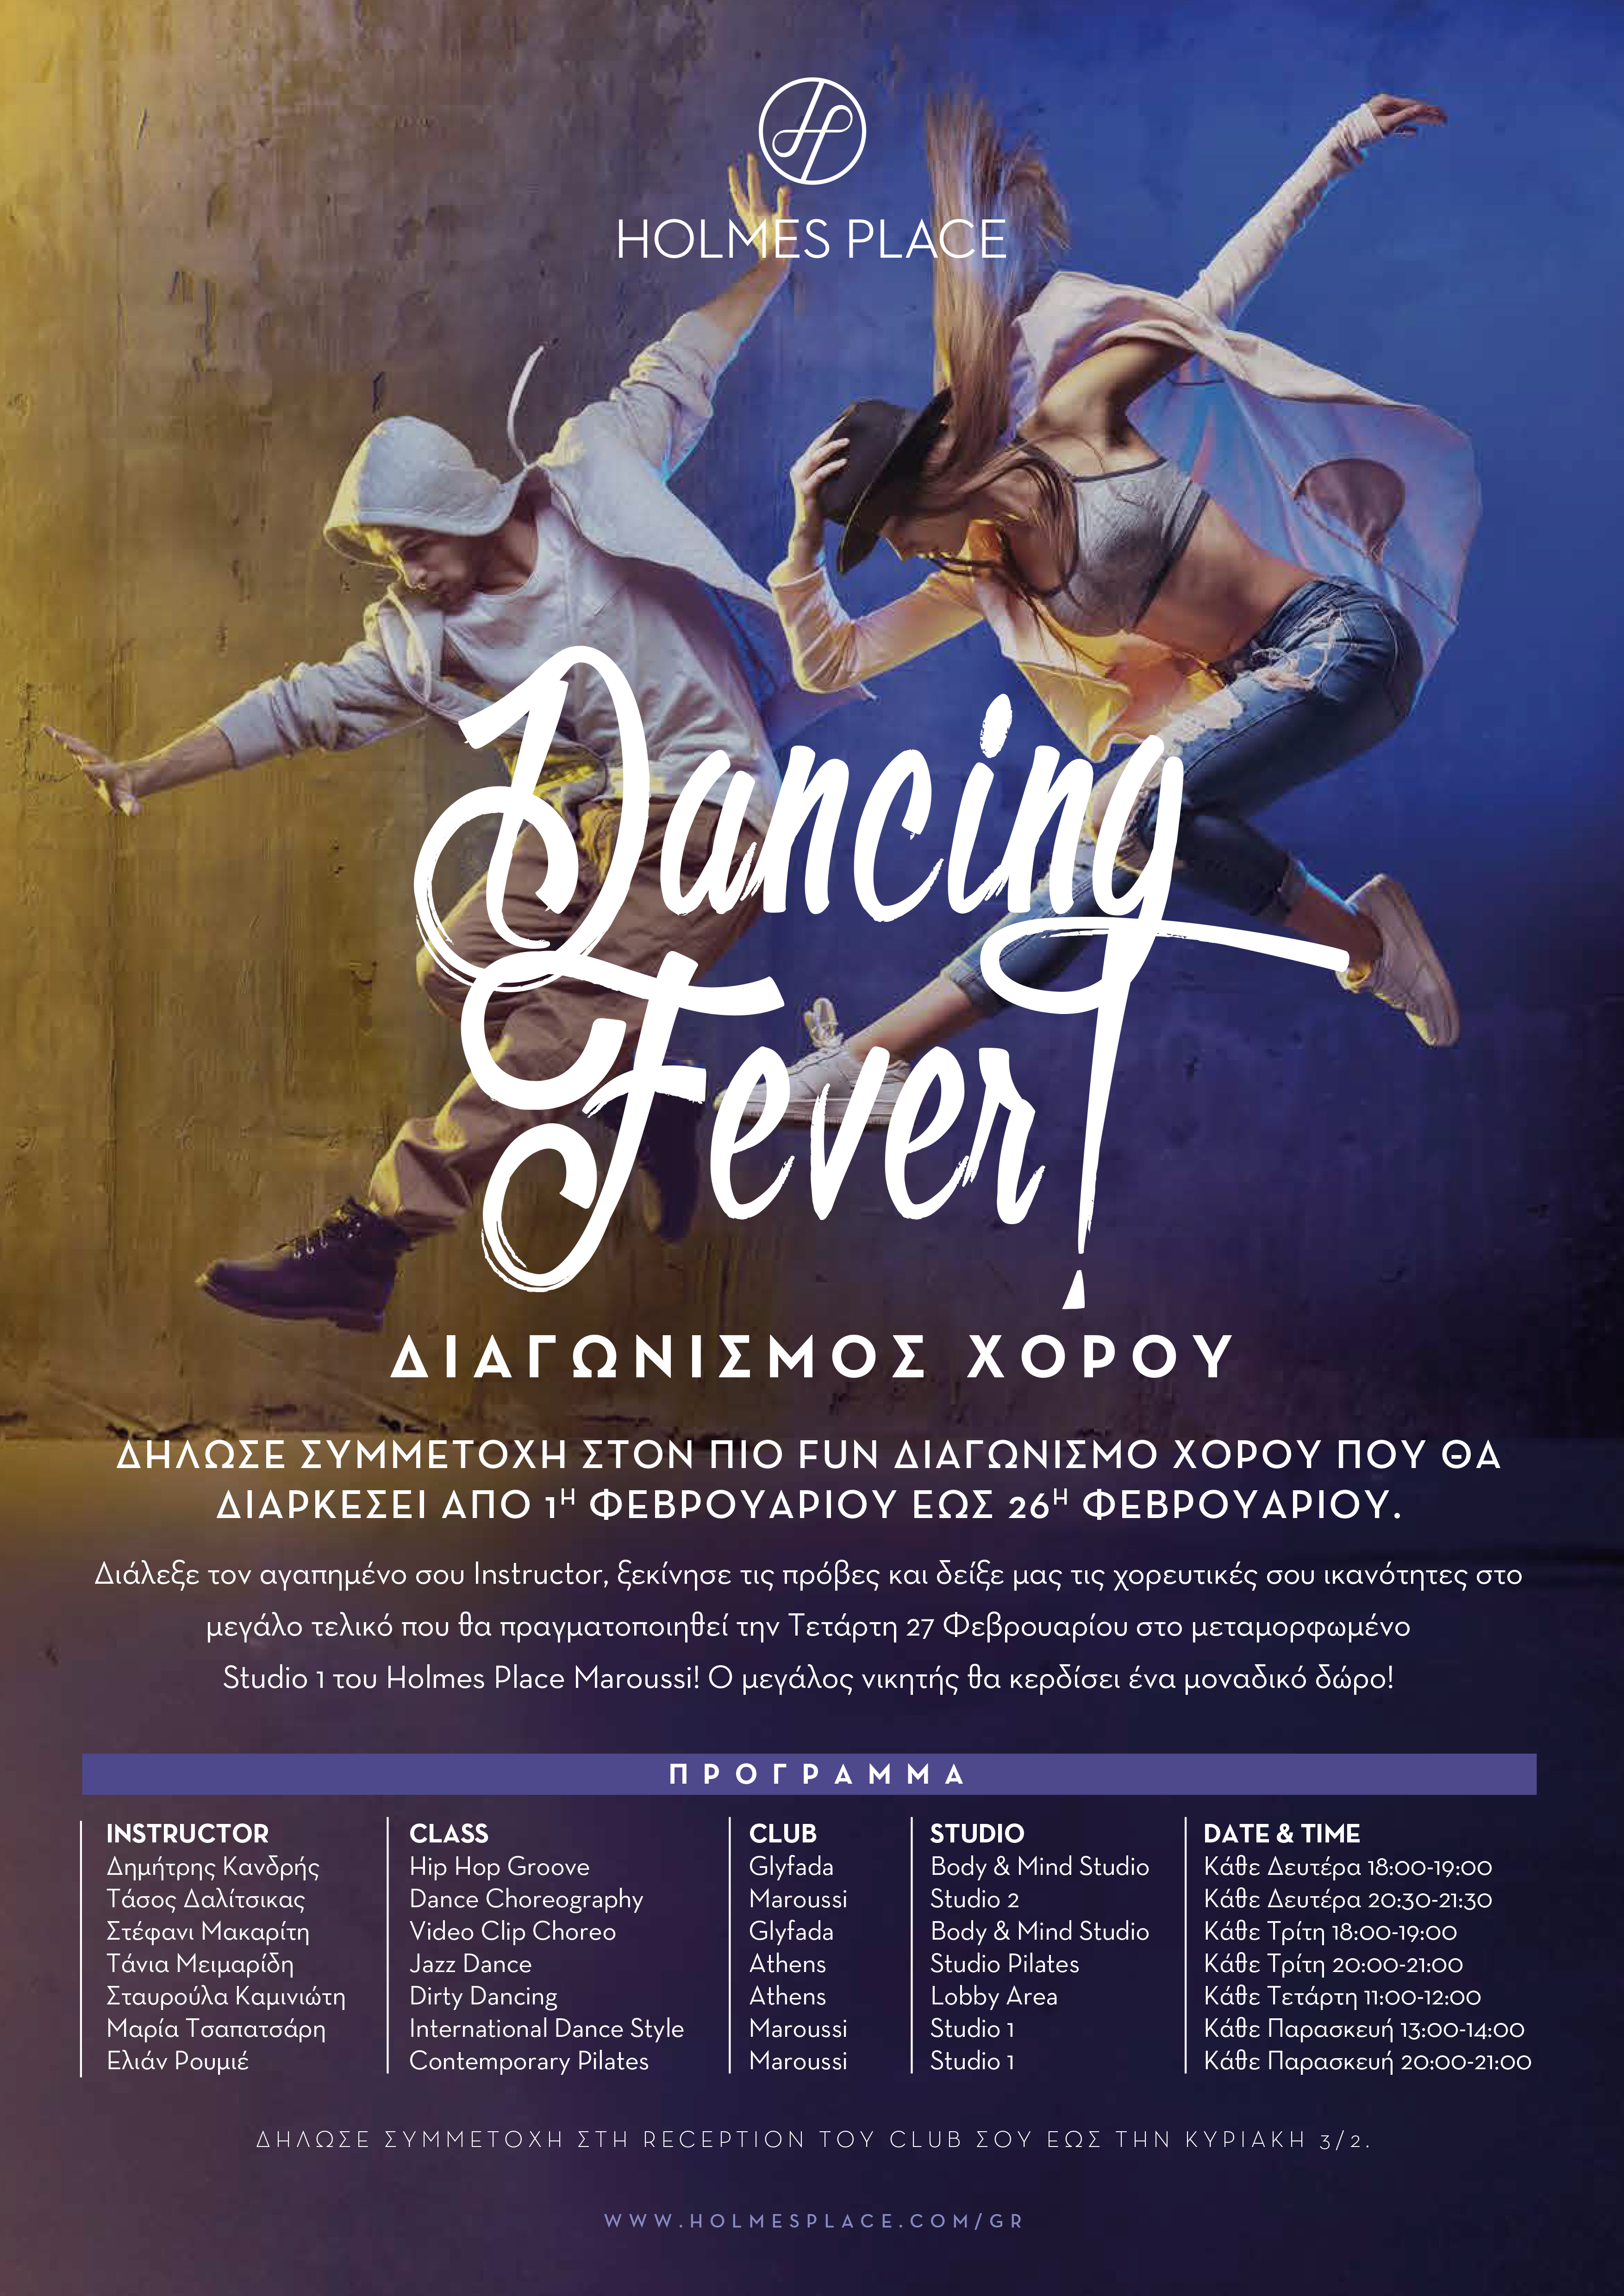 Holmes Place | Dancing Fever διαγωνισμος χορού